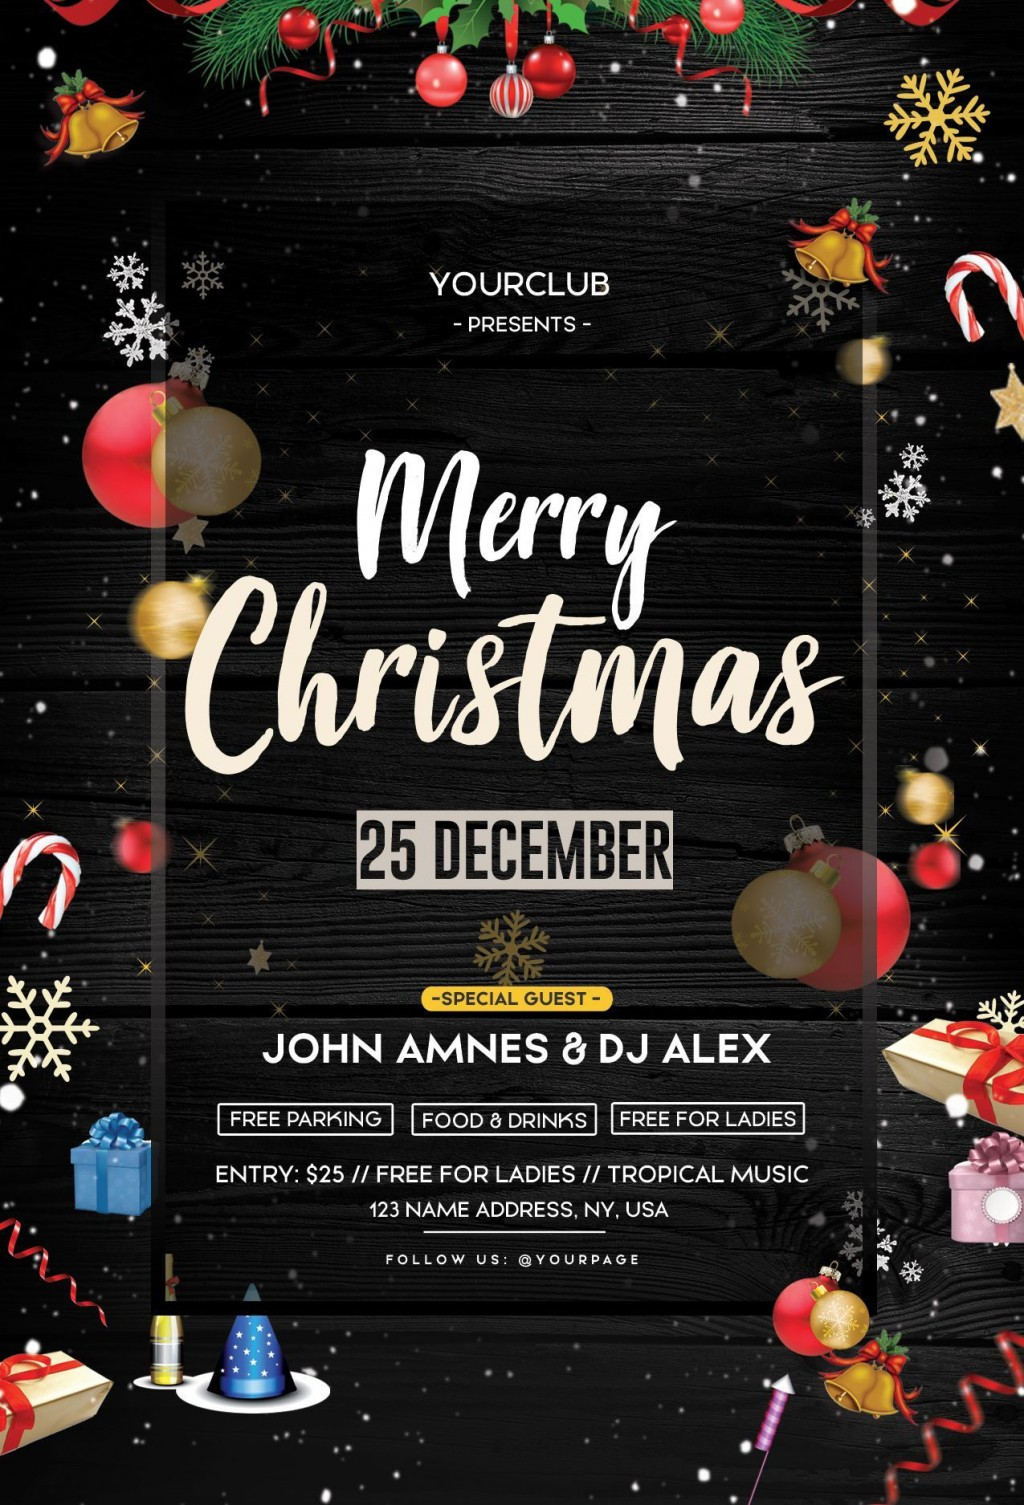 004 Wonderful Christma Flyer Template Free High Def  Party Invitation Psd DownloadLarge